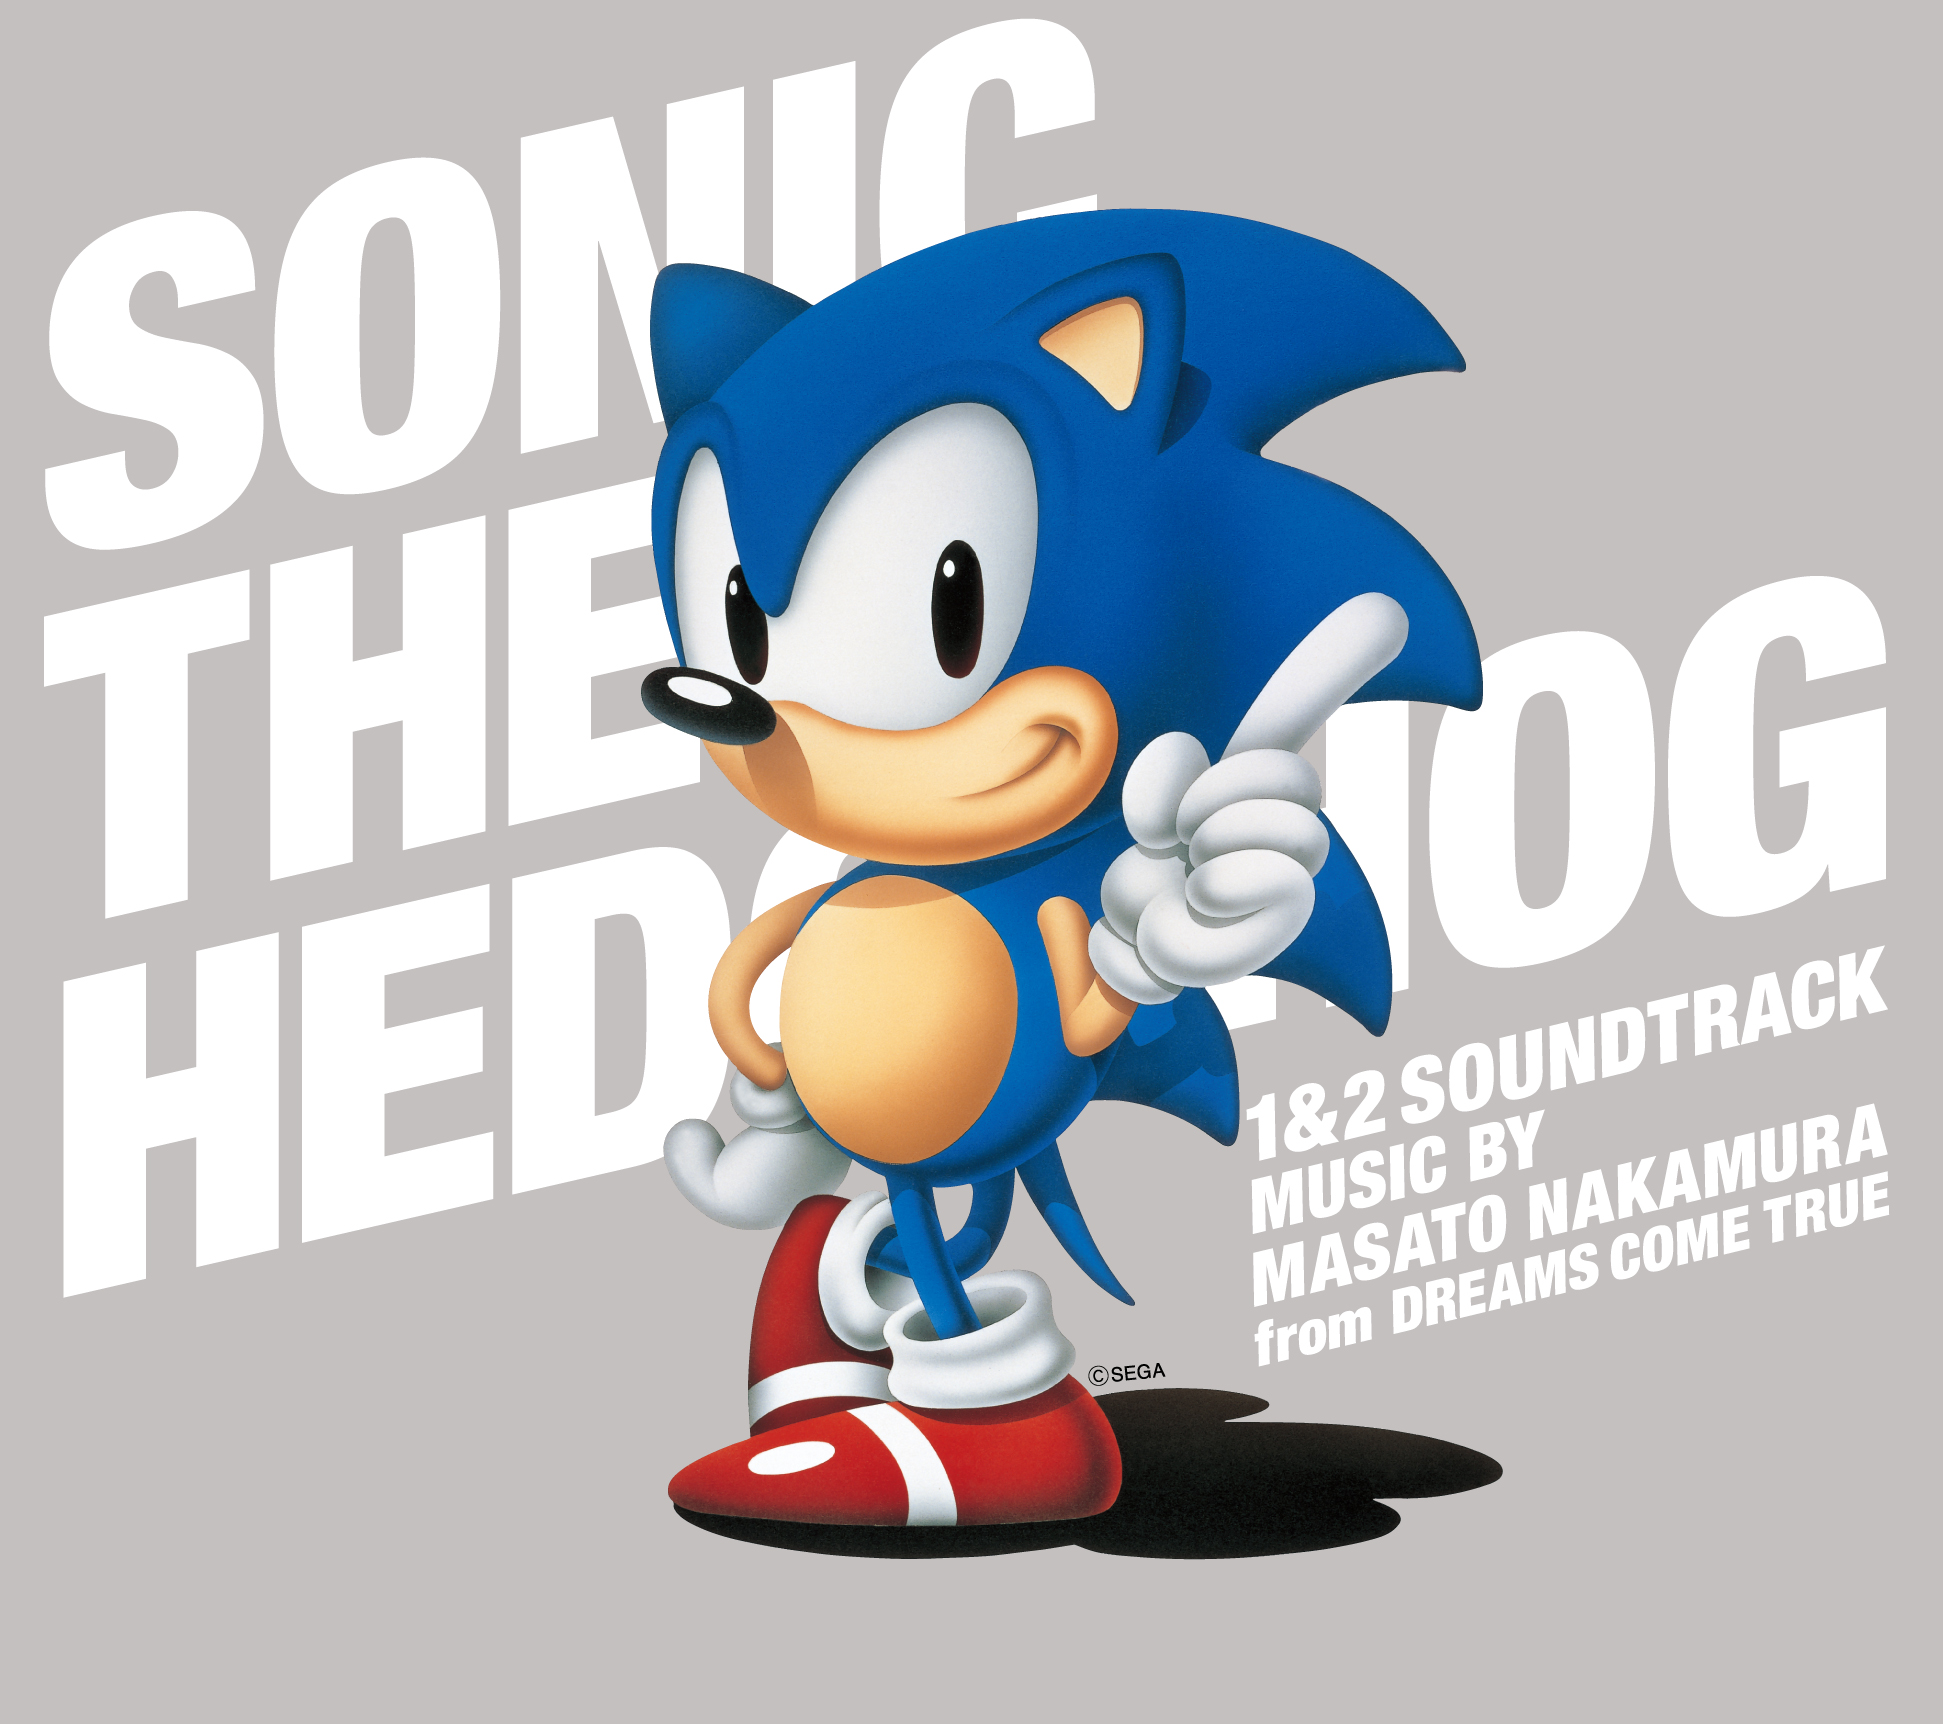 Sonic the hedgehog news. Cd clipart soundtrack